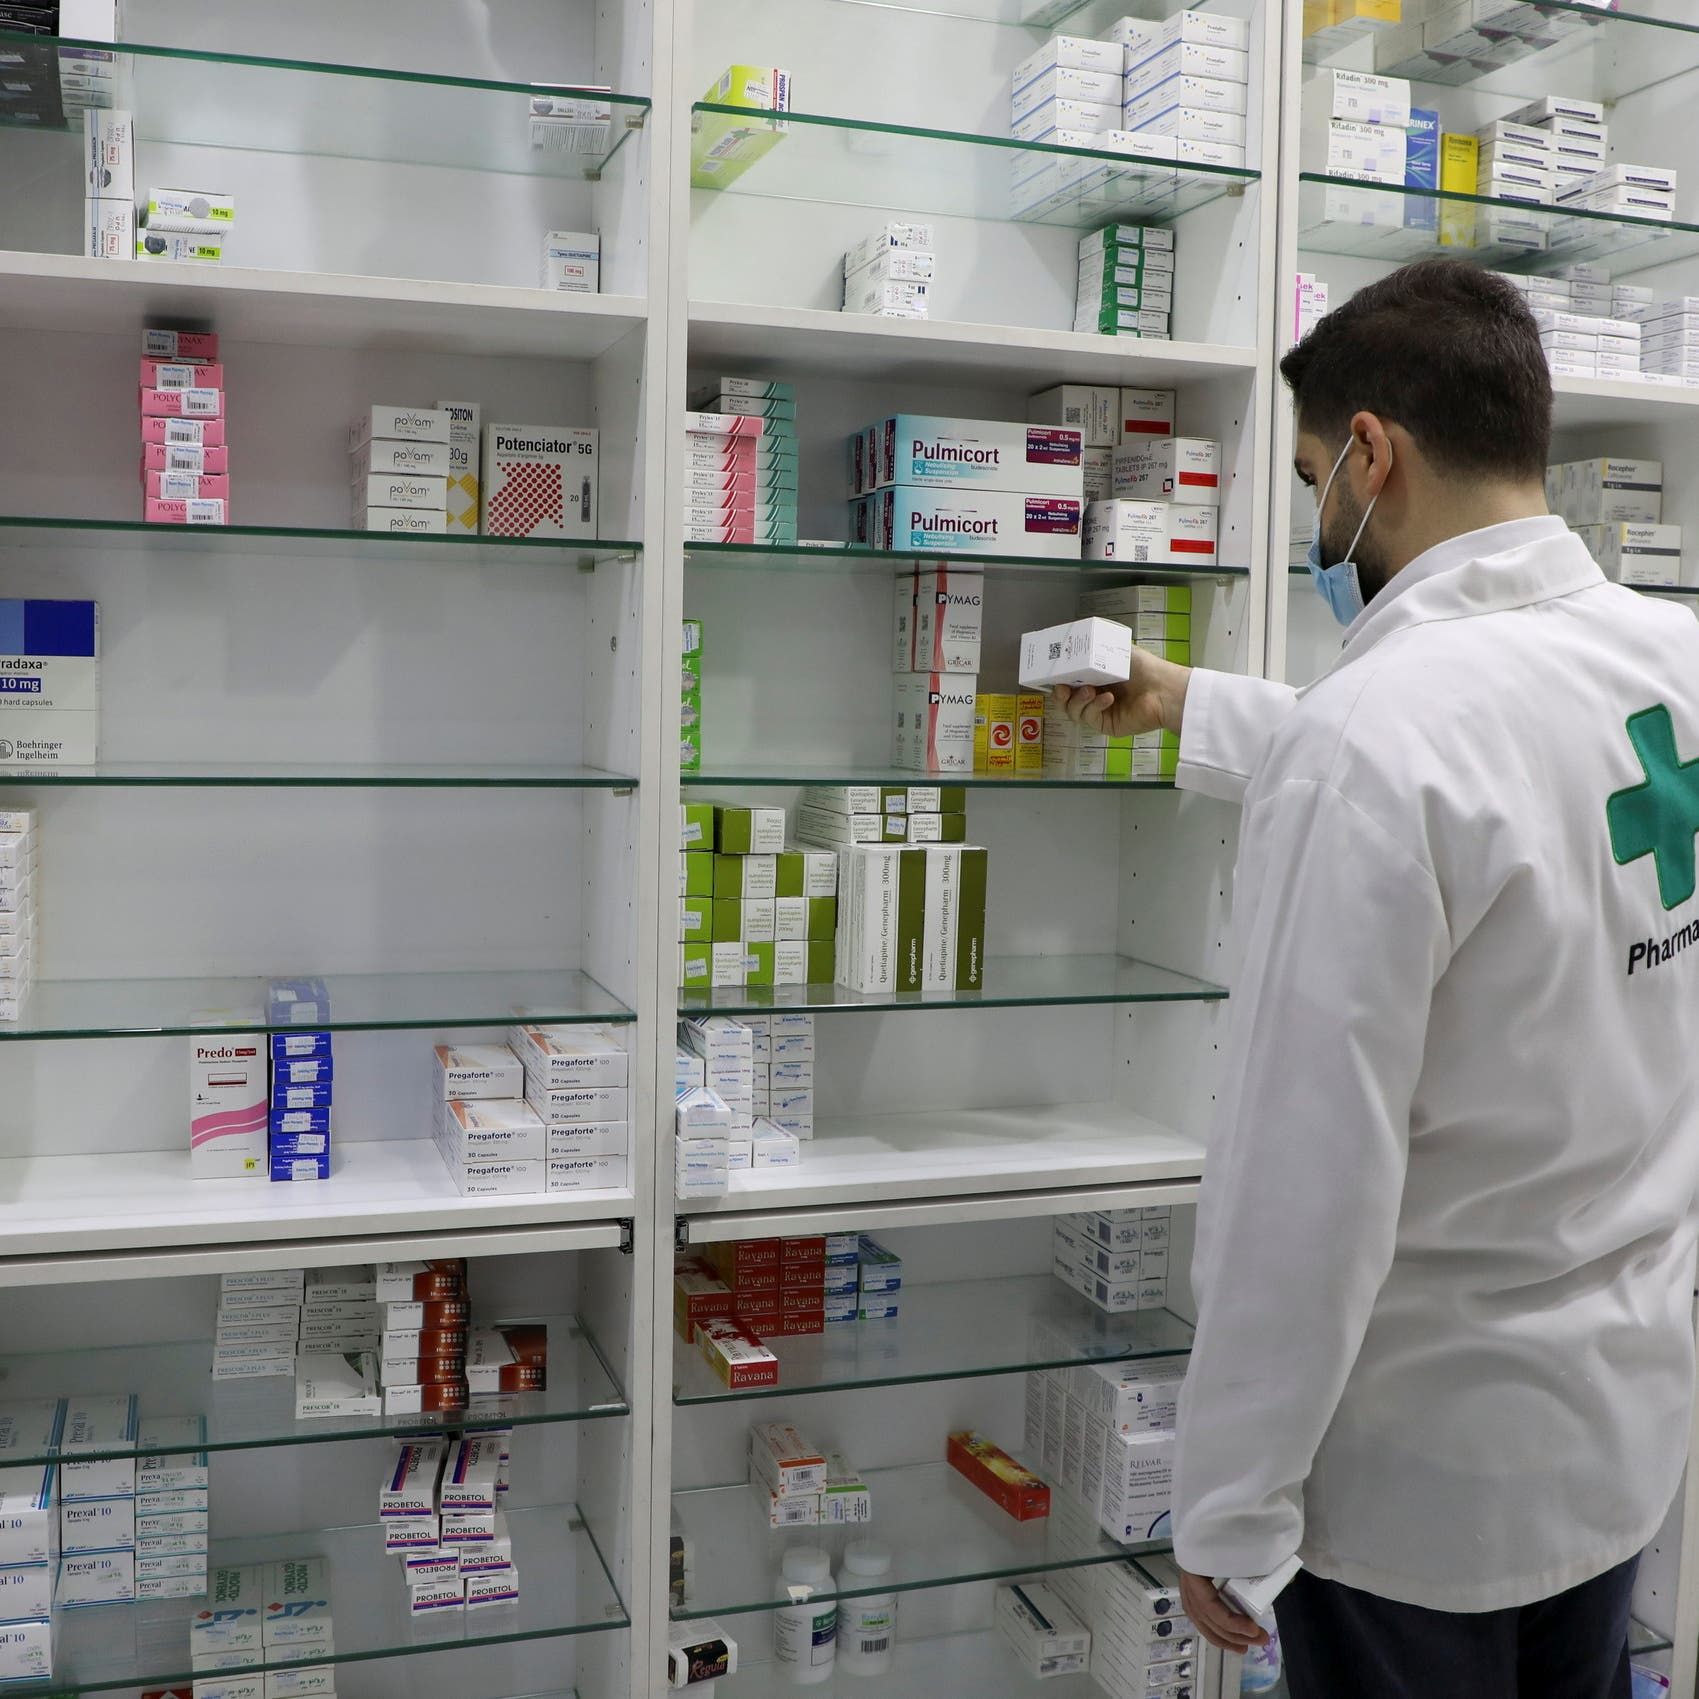 'It's hell': Lebanon's pharmacists, doctors fear more deaths as crisis worsens